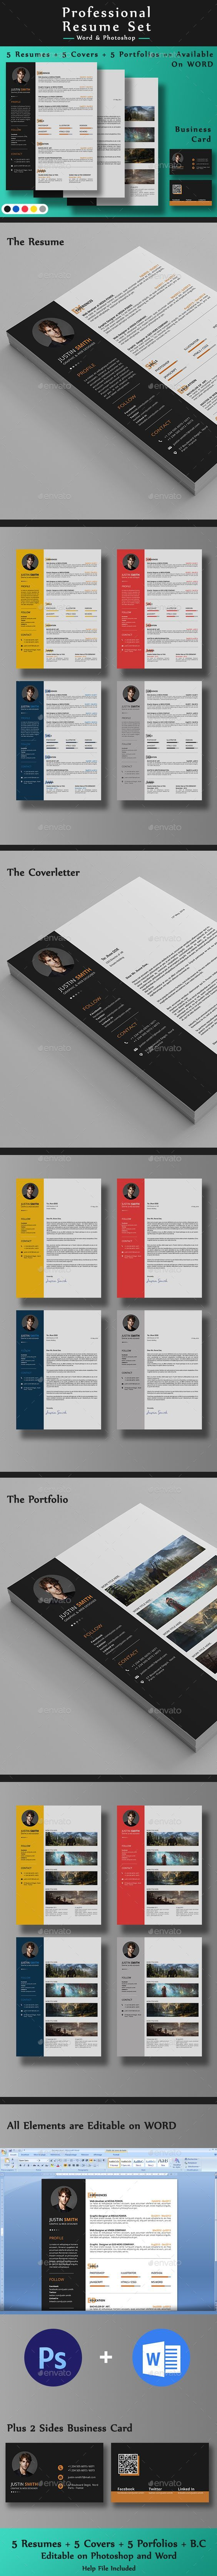 26 best projects to try images on pinterest design resume resume